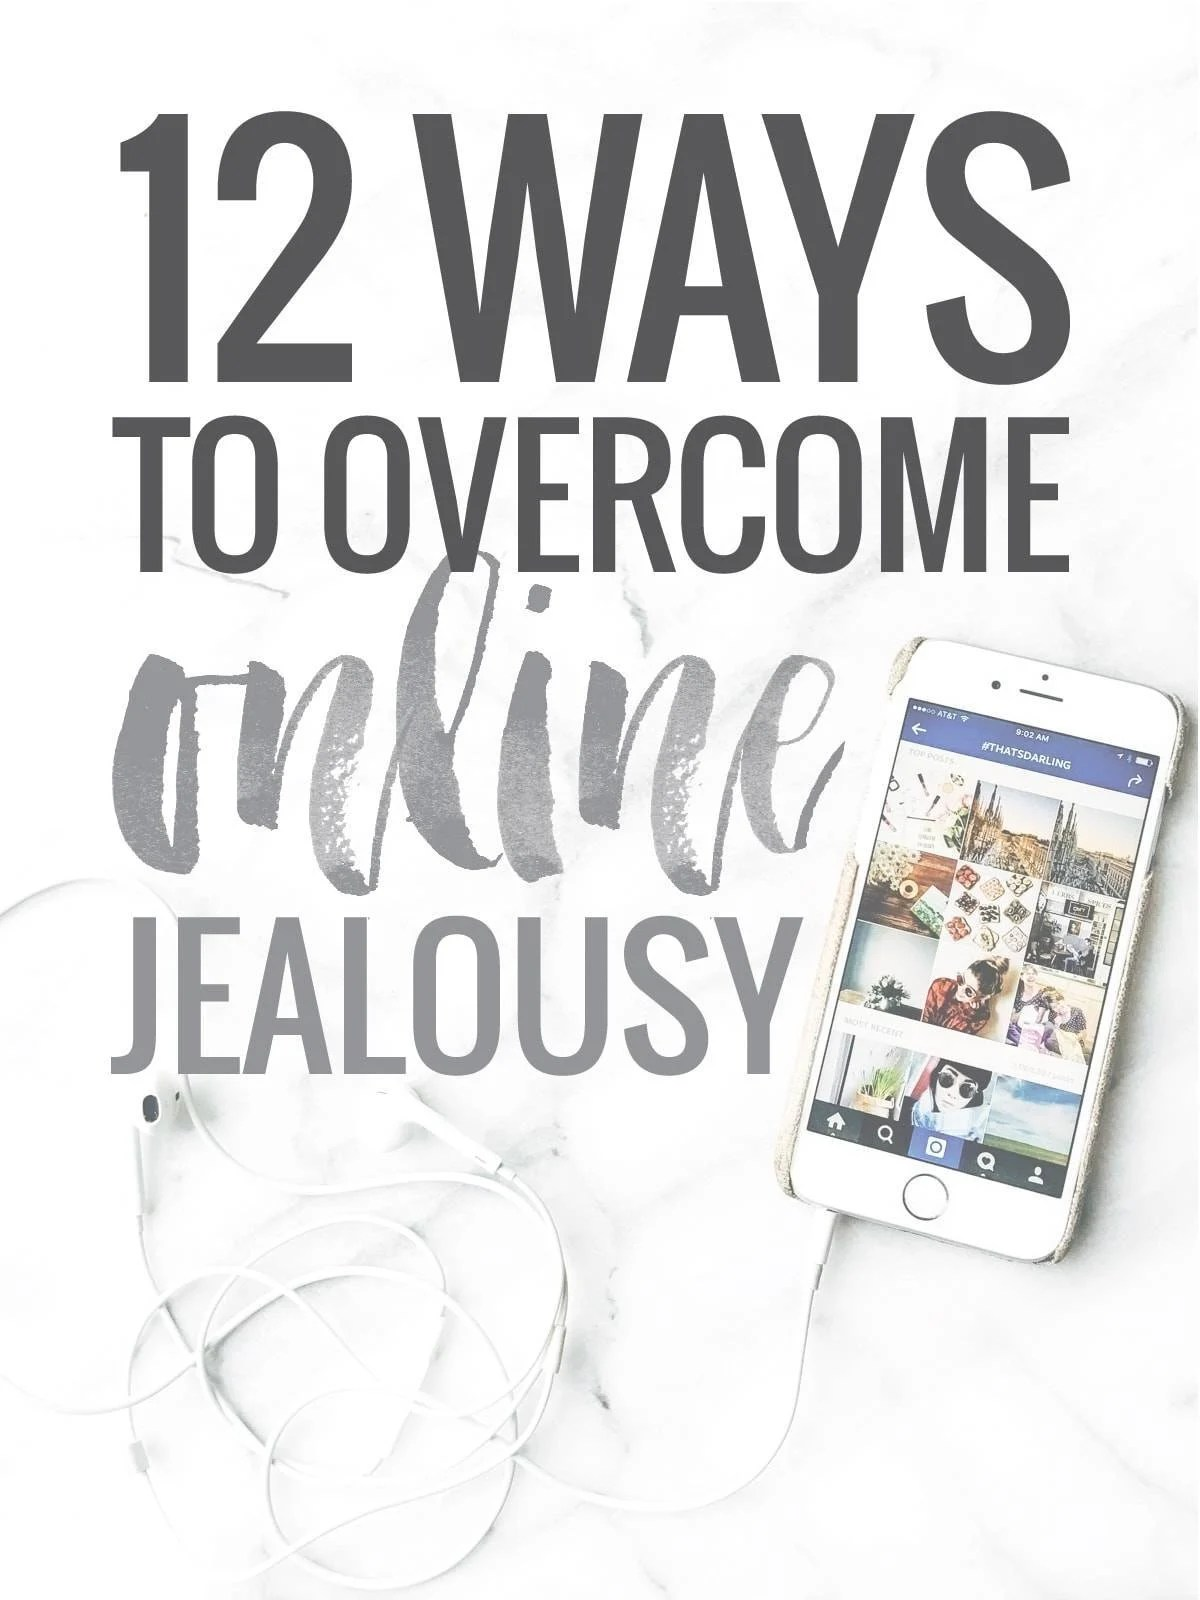 Feeling Jealous on the Internet... and 12 Ways to Make it Stop | pinchofyum.com